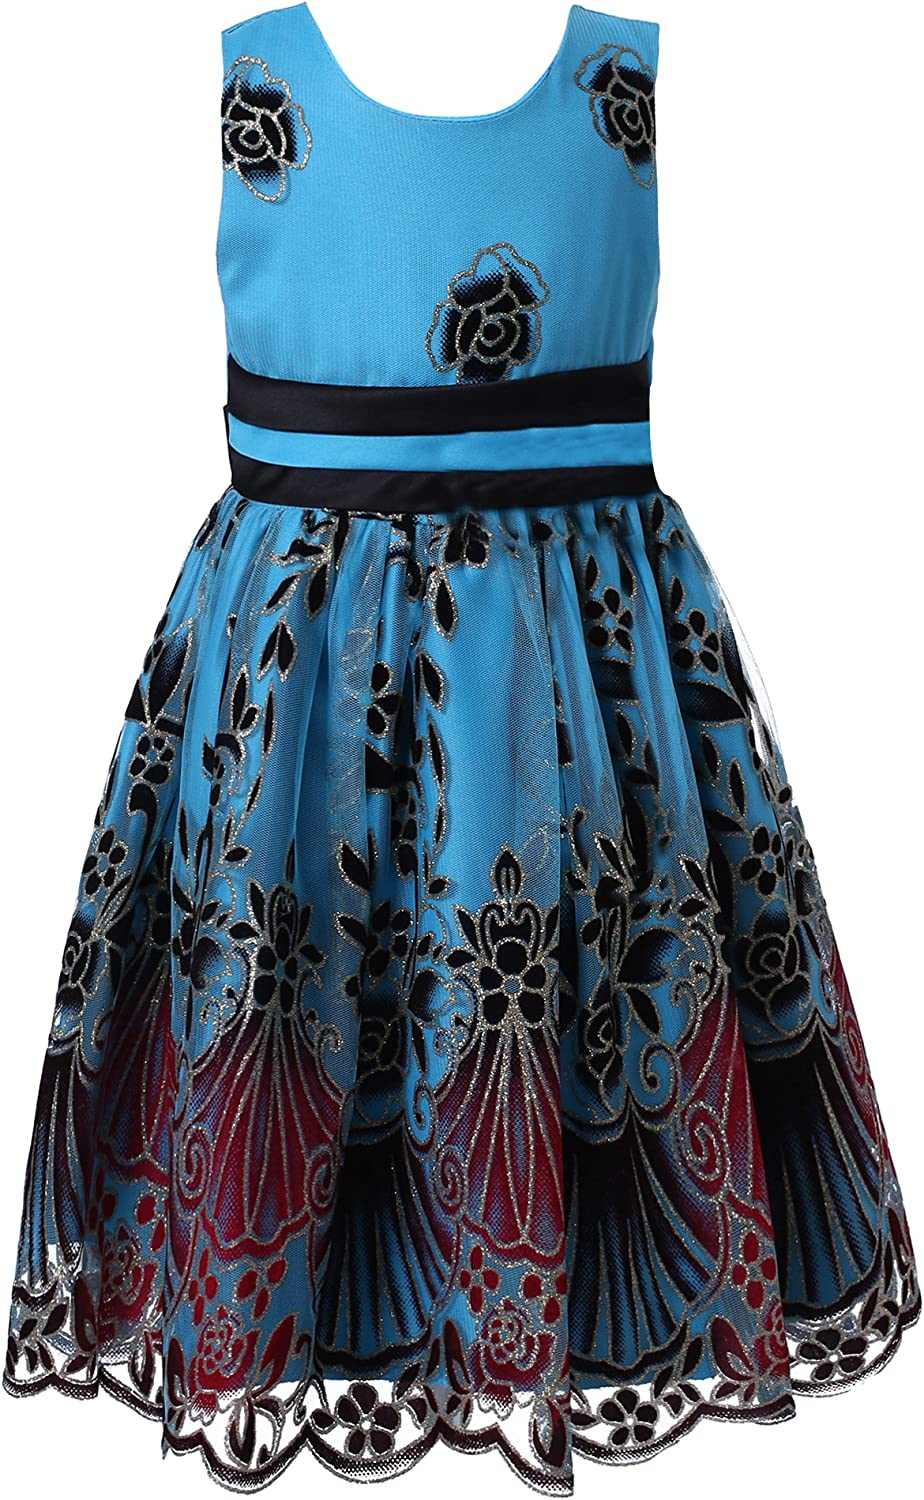 Richie House Girls' Sweet Party Multi-Layered Dress Size 2-12Y RH2142